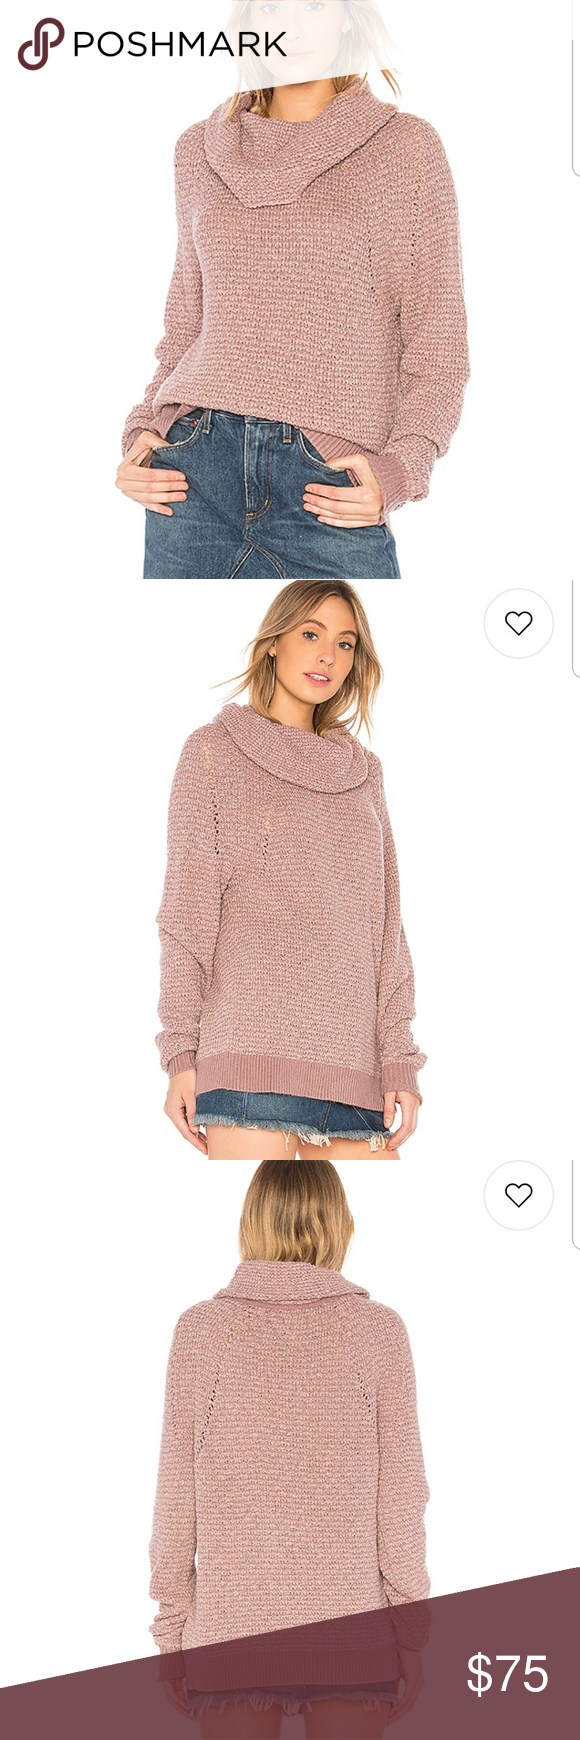 Free People By Your Side Sweater In Mauve Nwt In 2018 My Posh